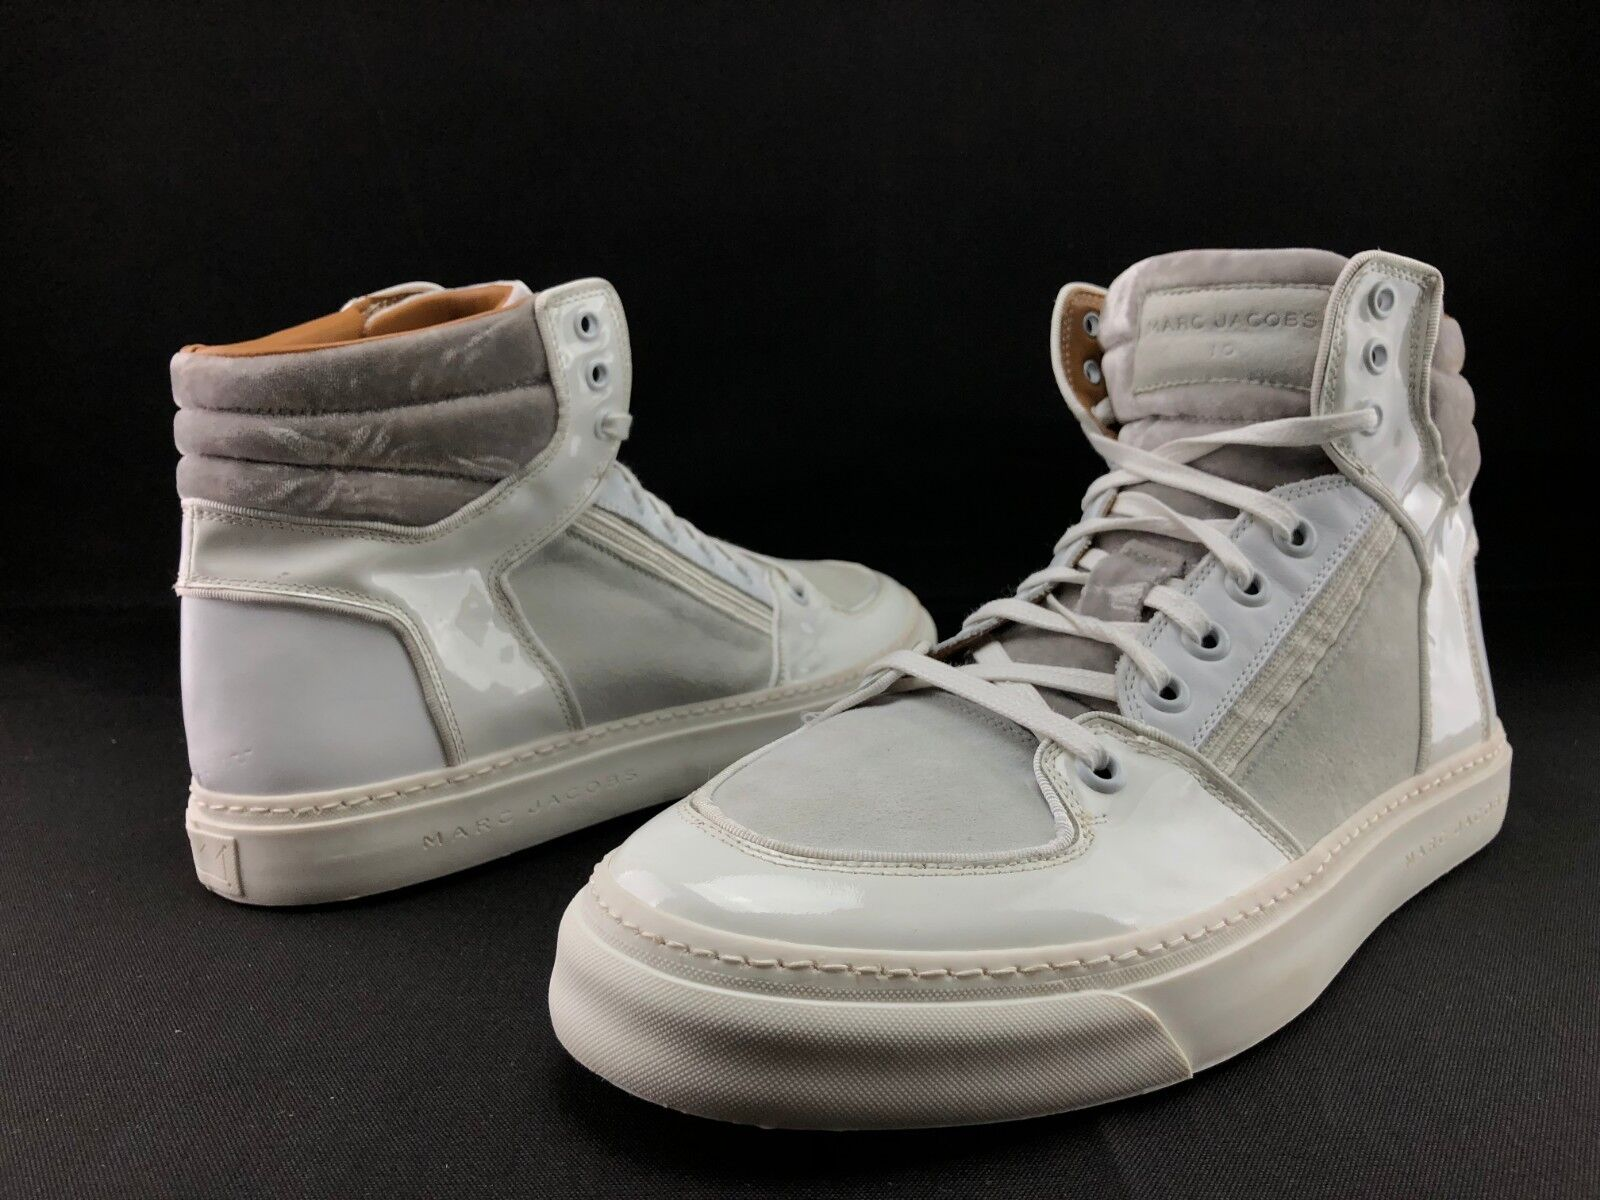 41a856297000 Marc Marc Marc Jacobs Men s Suede Leather Hi Top Fashion Sneakers Shoes US  10 C428 9581ba